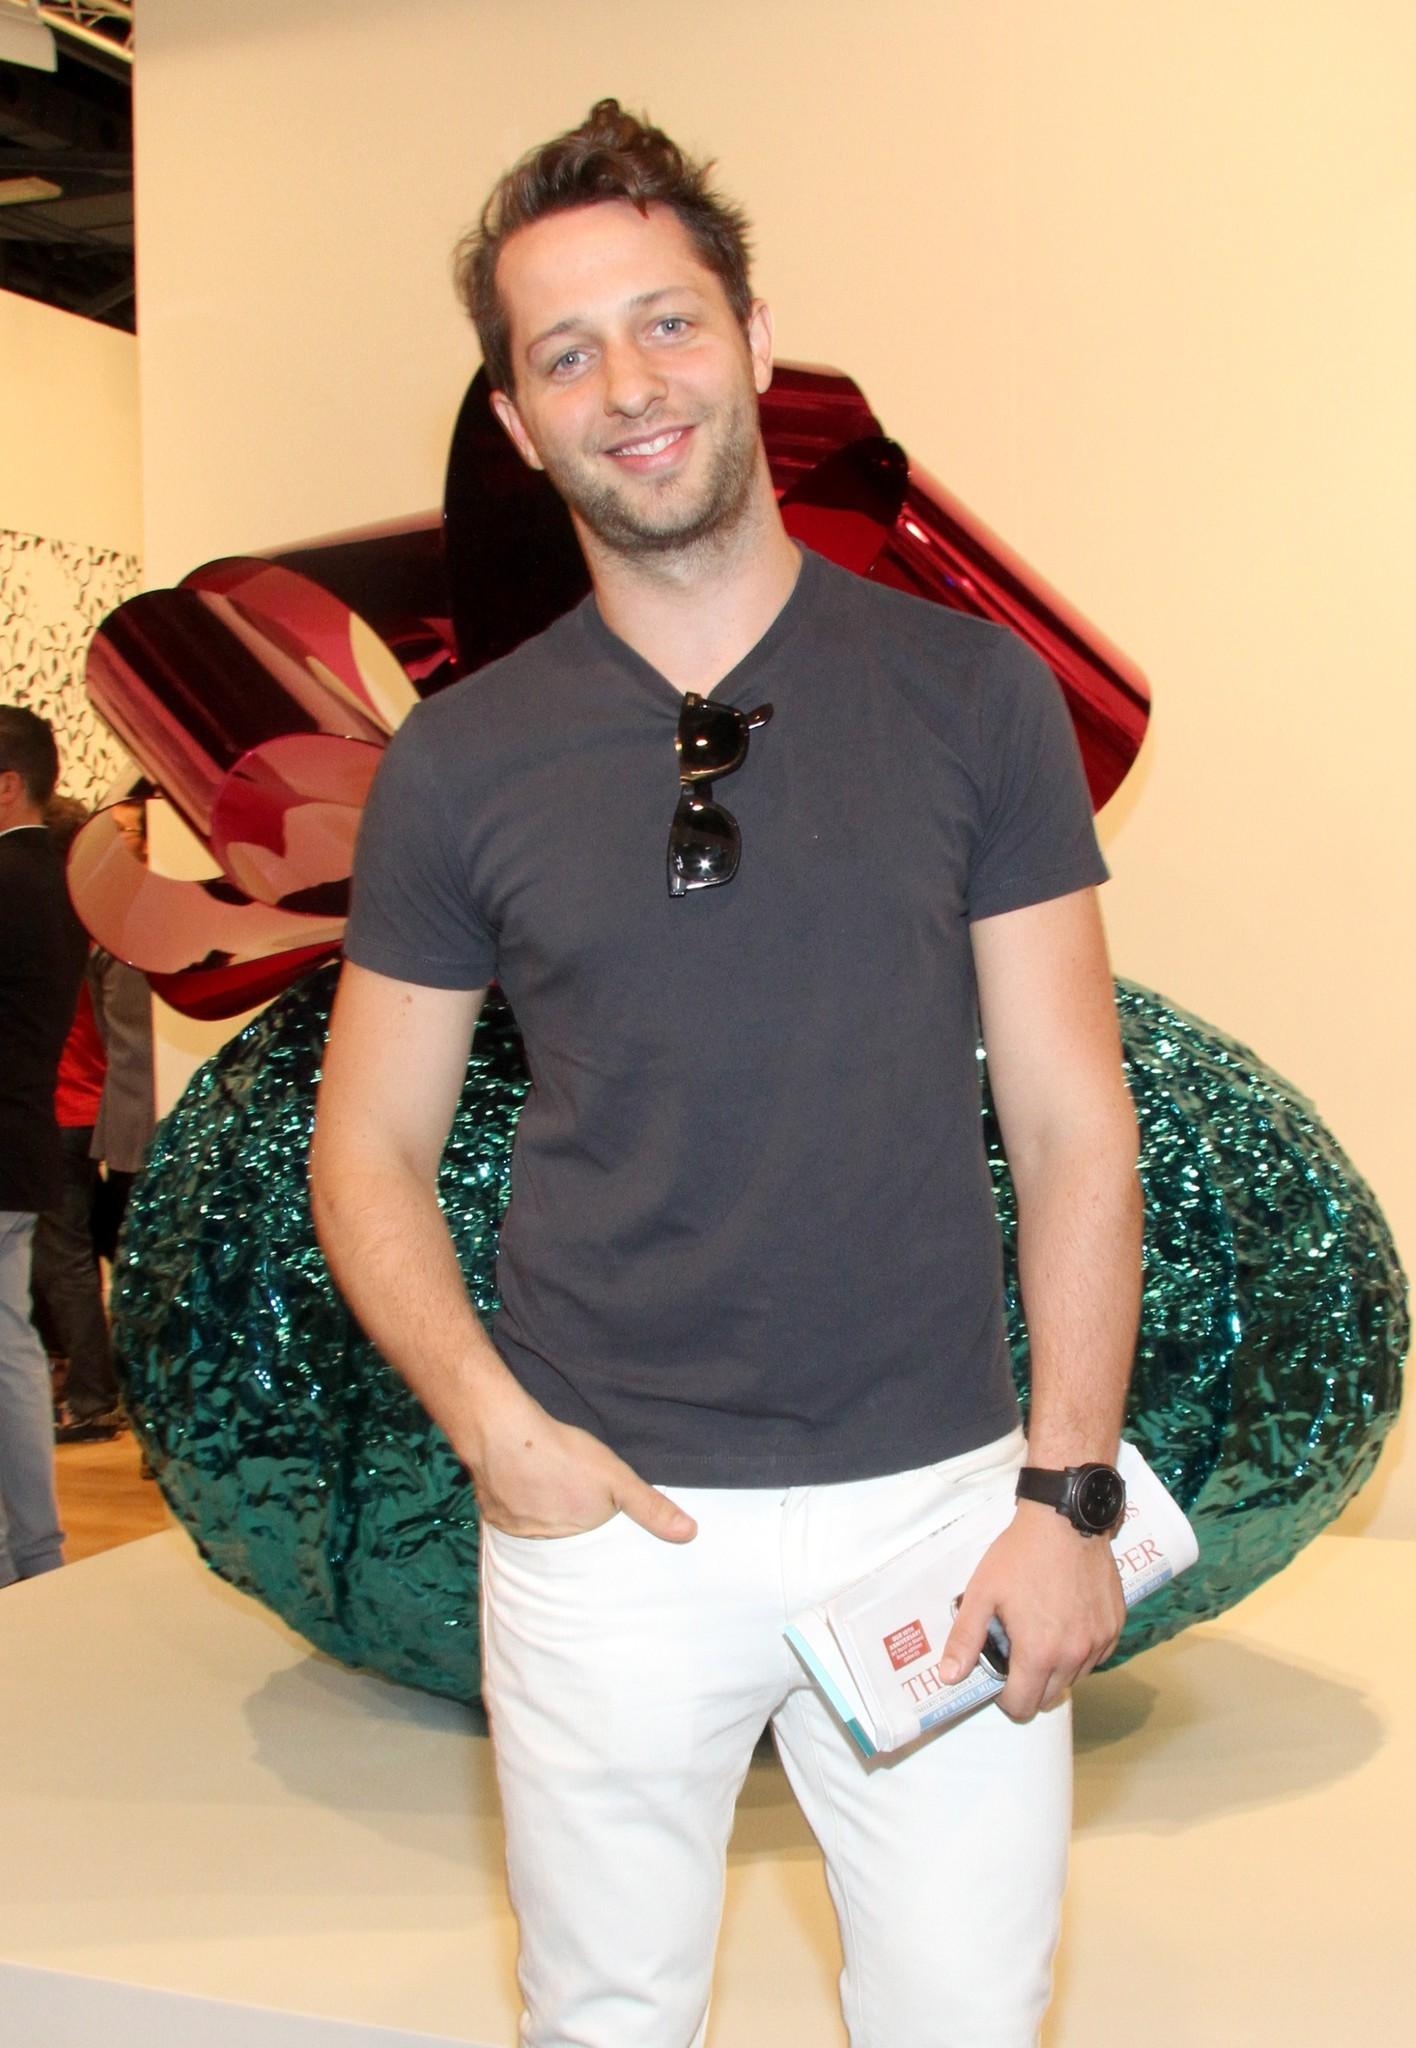 PHOTOS: Artists, celebs at Art Basel - Derek Blasberg